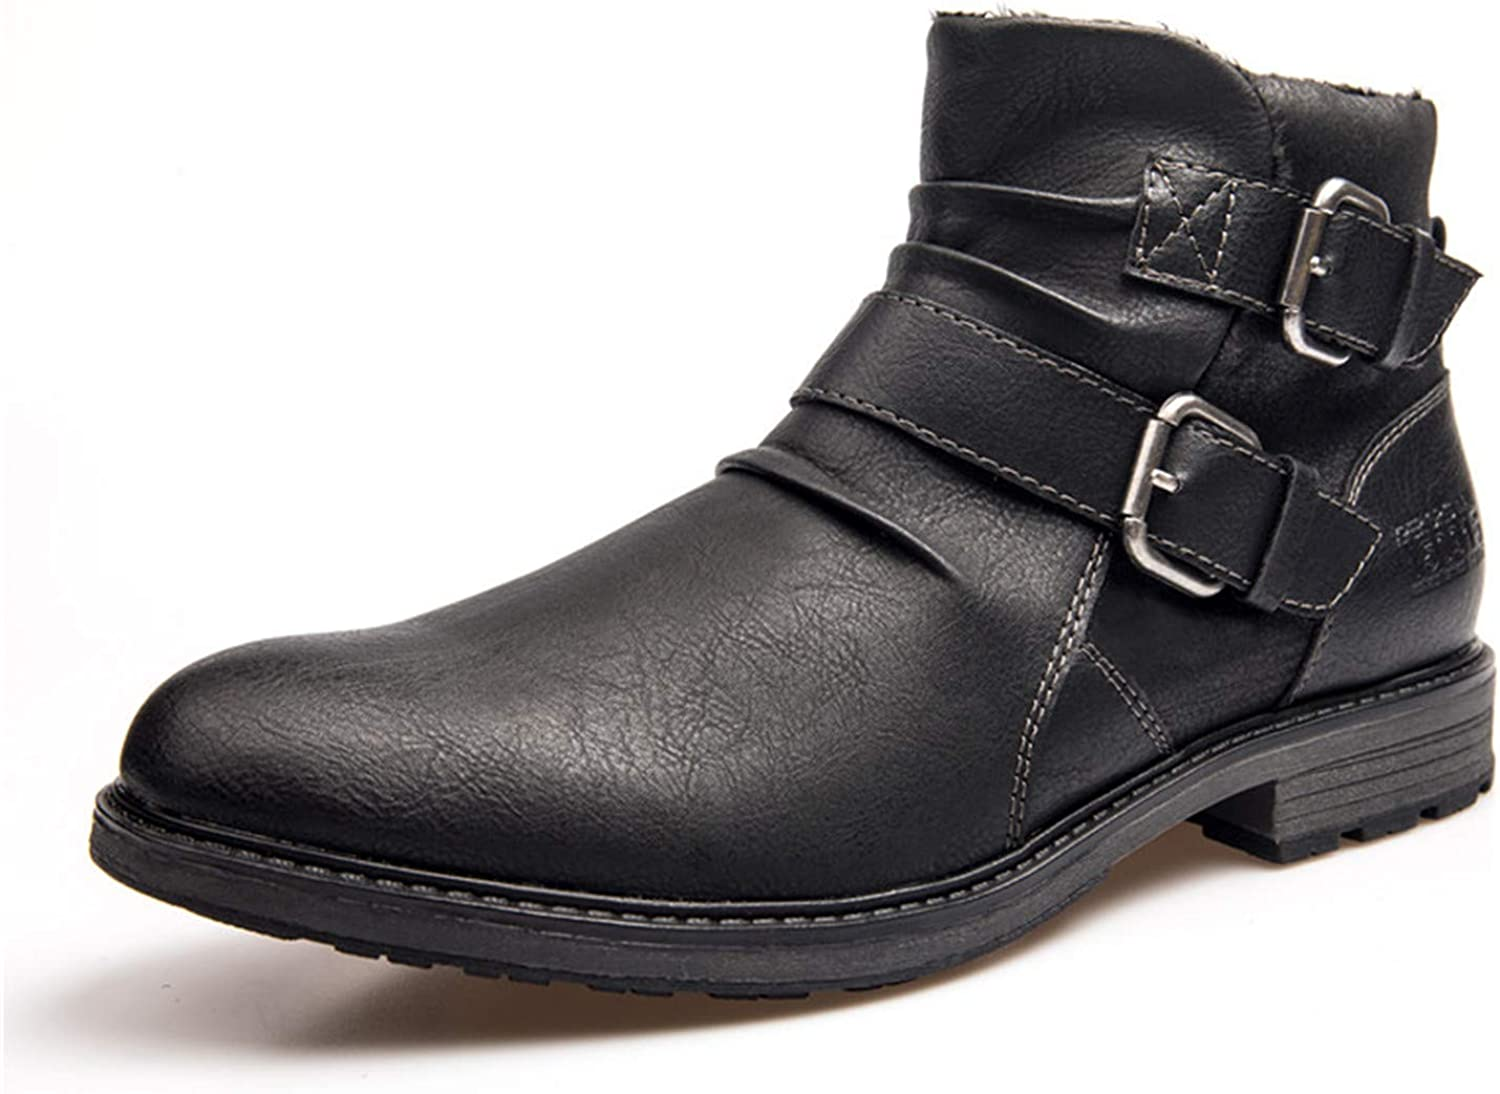 Big Size 40-48 Ankle Boots Men Buckle Waterproof Black Winter shoes Motorcycle Boots XHY12501BL